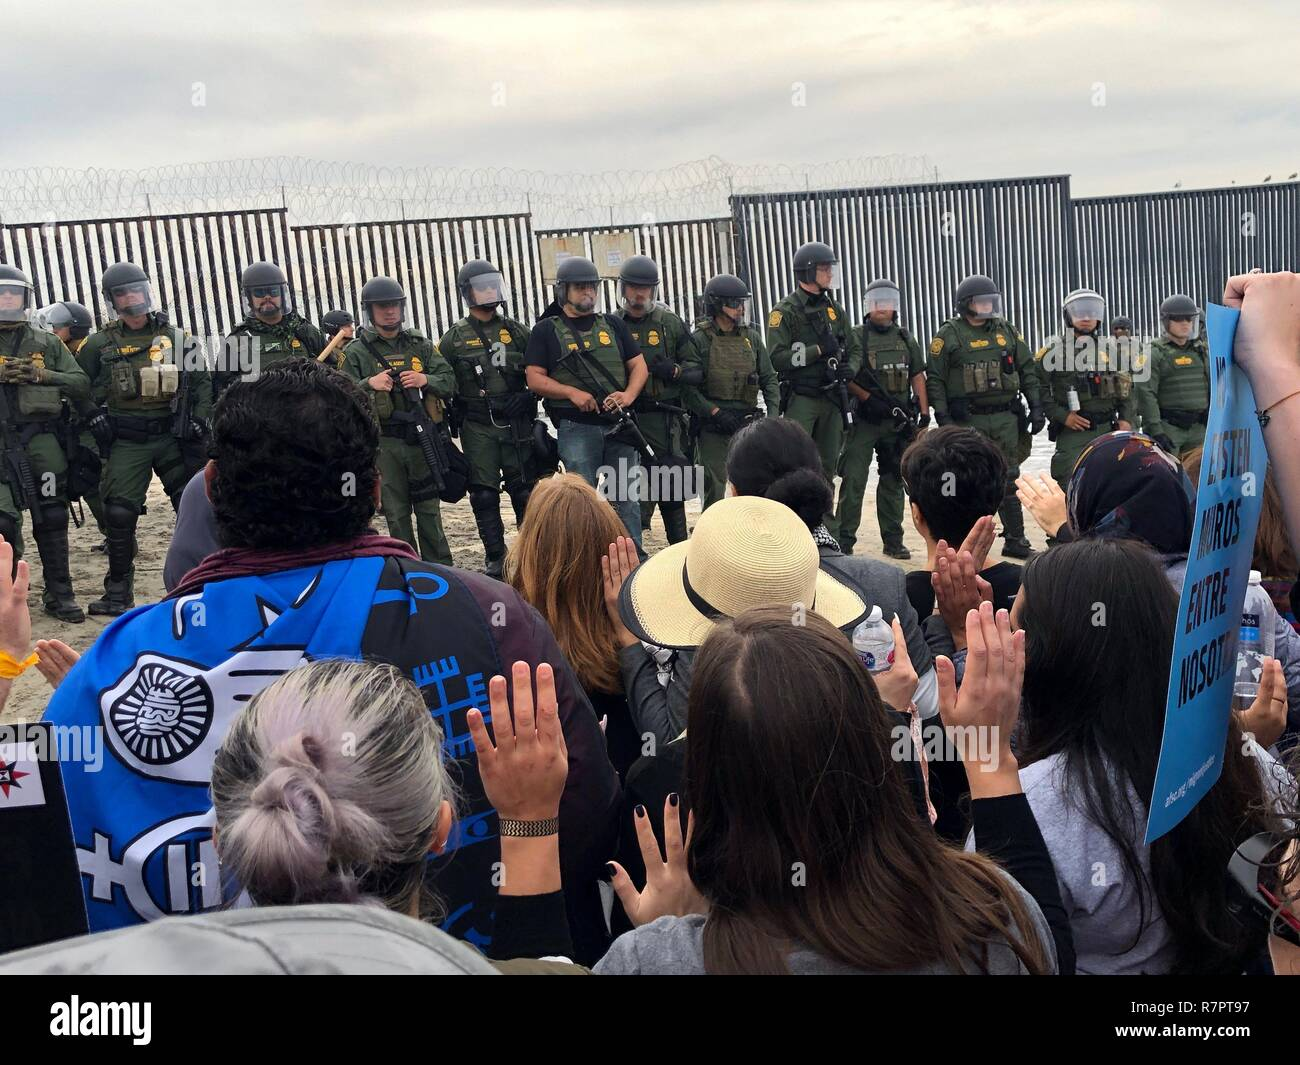 San Diego, United States. 10th Dec, 2018. A group of demonstrators, mostly religious, confronts members of the Federal Protection Service (FPS) during an act of civil disobedience in support of the migrant caravan, near the border wall between Tijuana (Mexico) and San Diego, California, USA, 10 December 2018. More than three dozen people, mostly religious, were arrested today at the border wall between Tijuana (Mexico) and San Diego (California), during an act of support for the immigrant caravan seeking political asylum in United States. Credit: Alexandra Mendoza/EFE/Alamy Live News - Stock Image